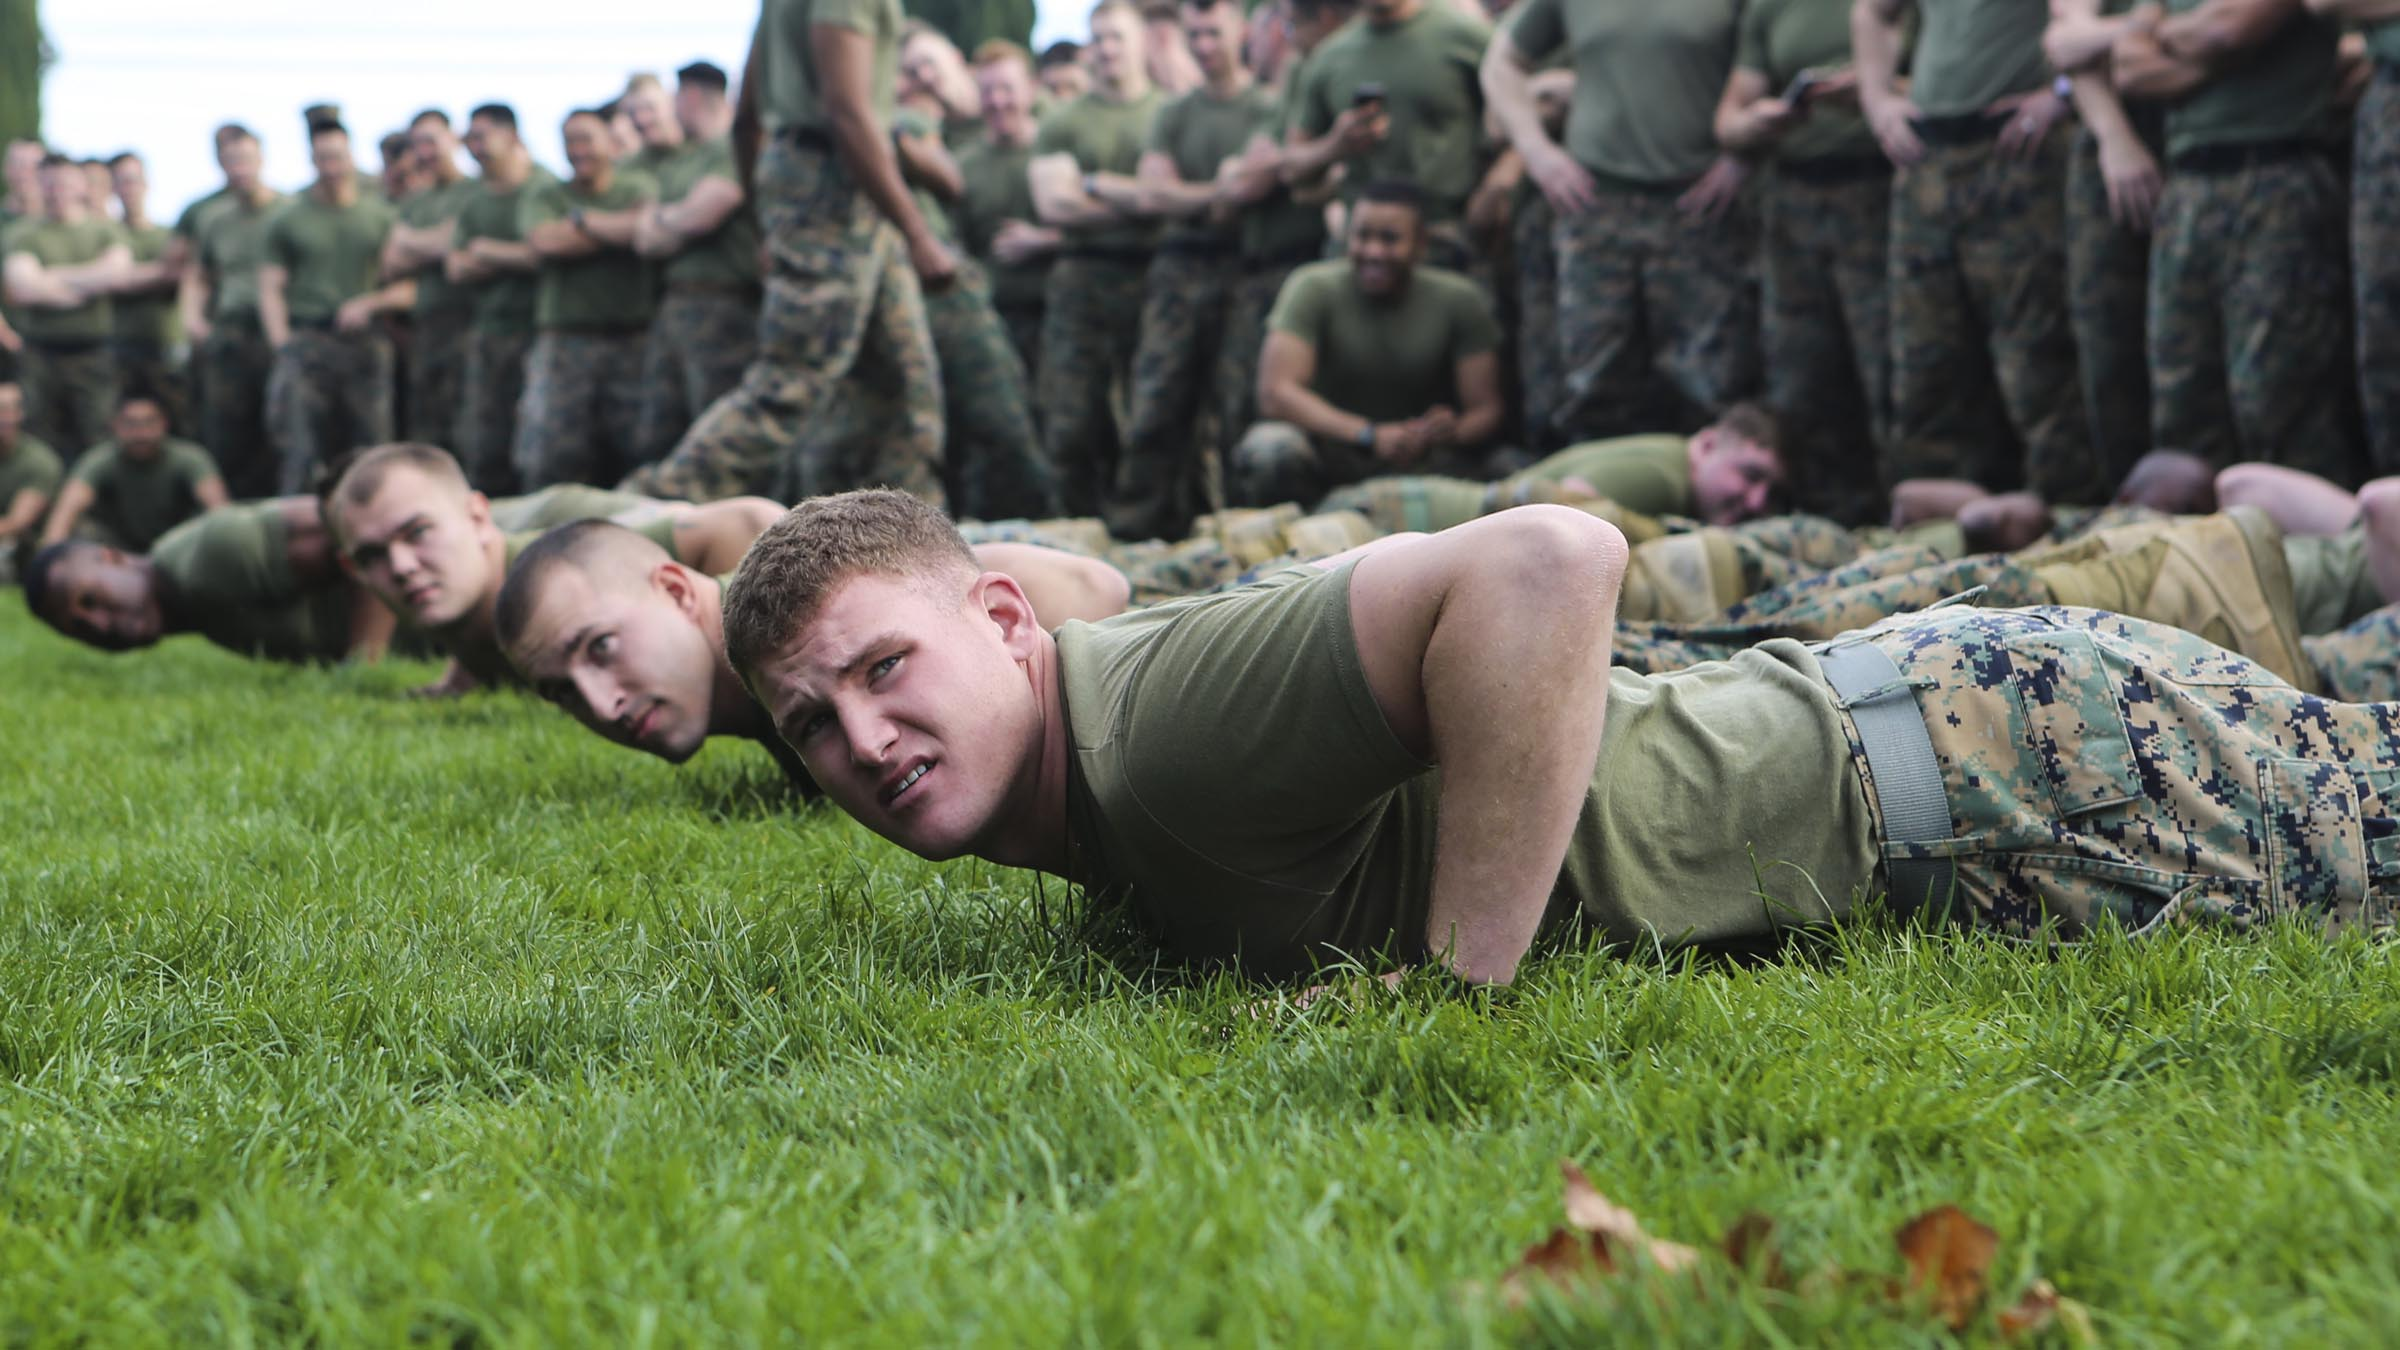 Four new service members do push-ups in front of a line of their peers.